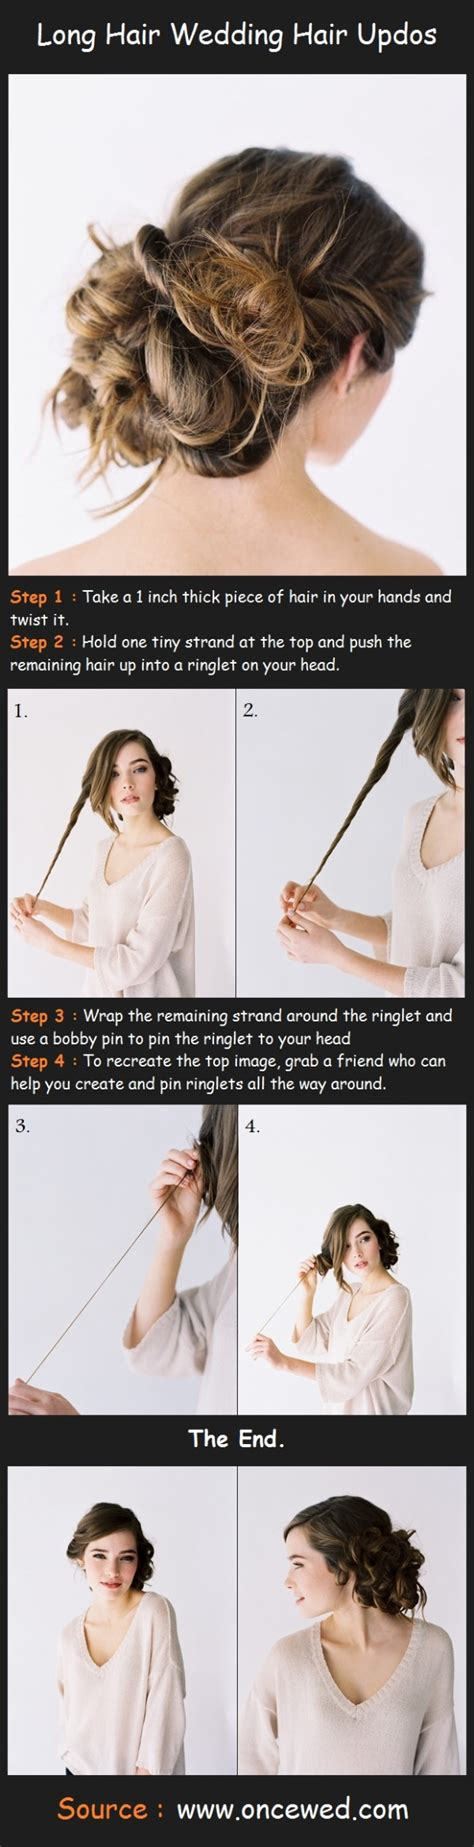 Wedding Updos For Hair Tutorials by Hair Wedding Hair Updos Tutorial Tutorials